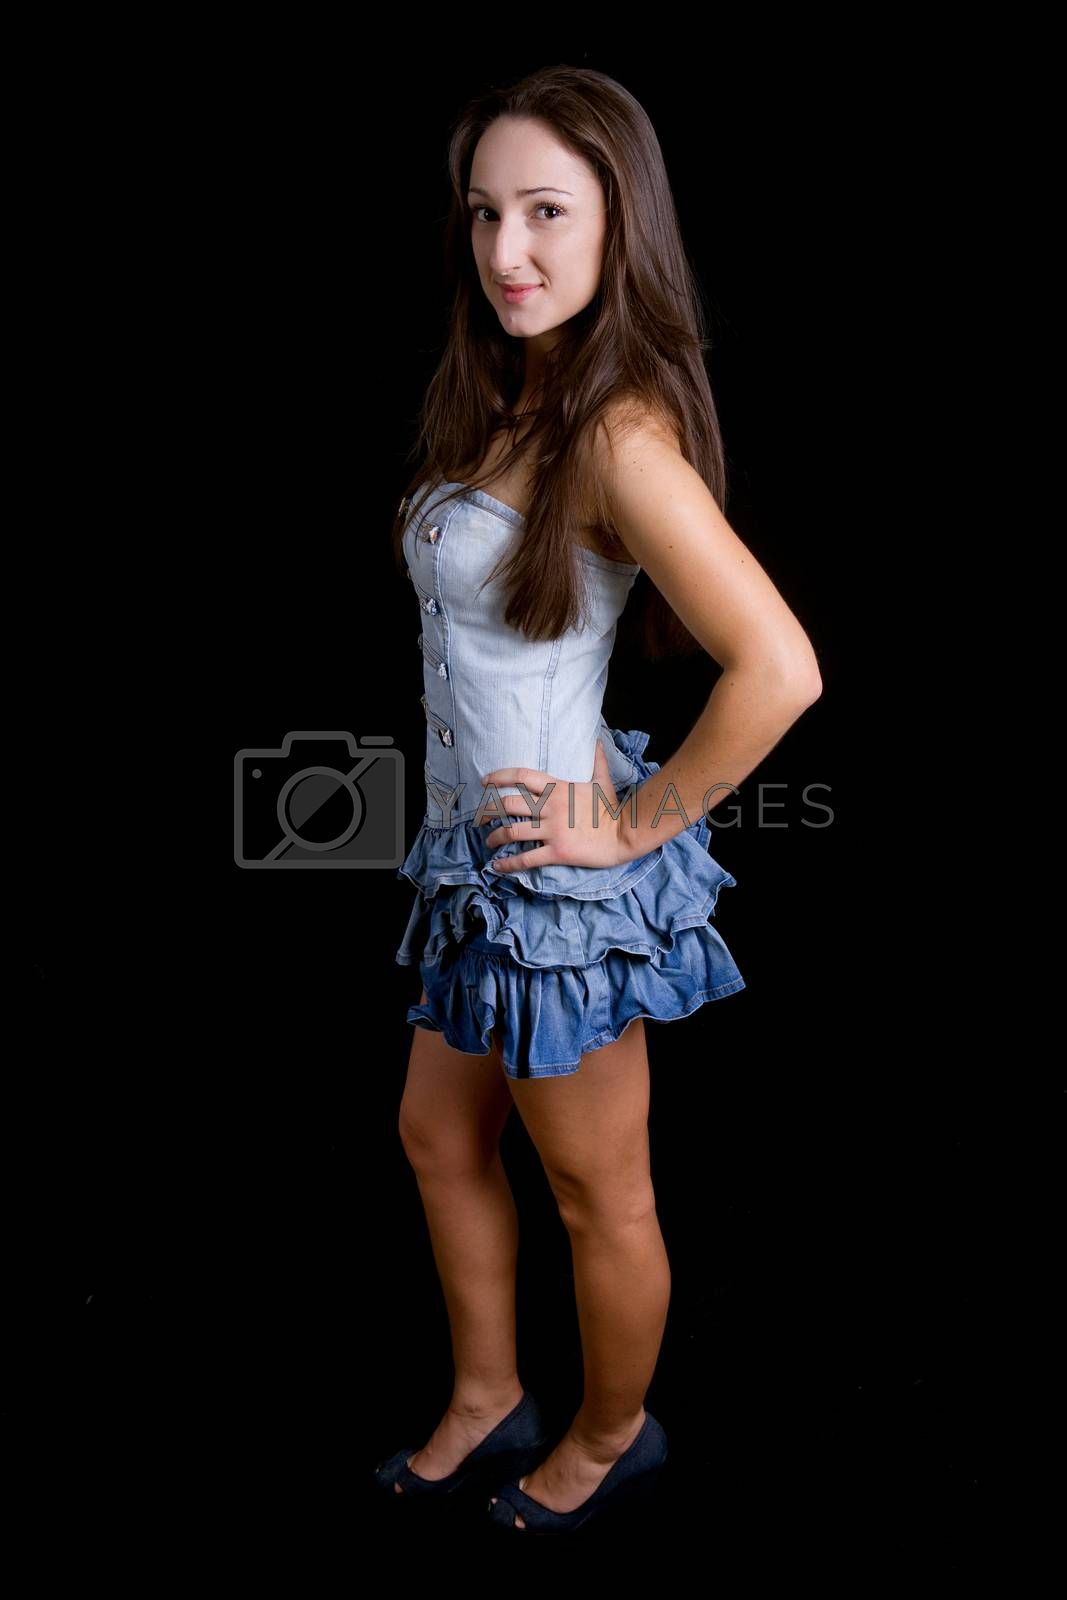 young beautiful woman full body on a black background